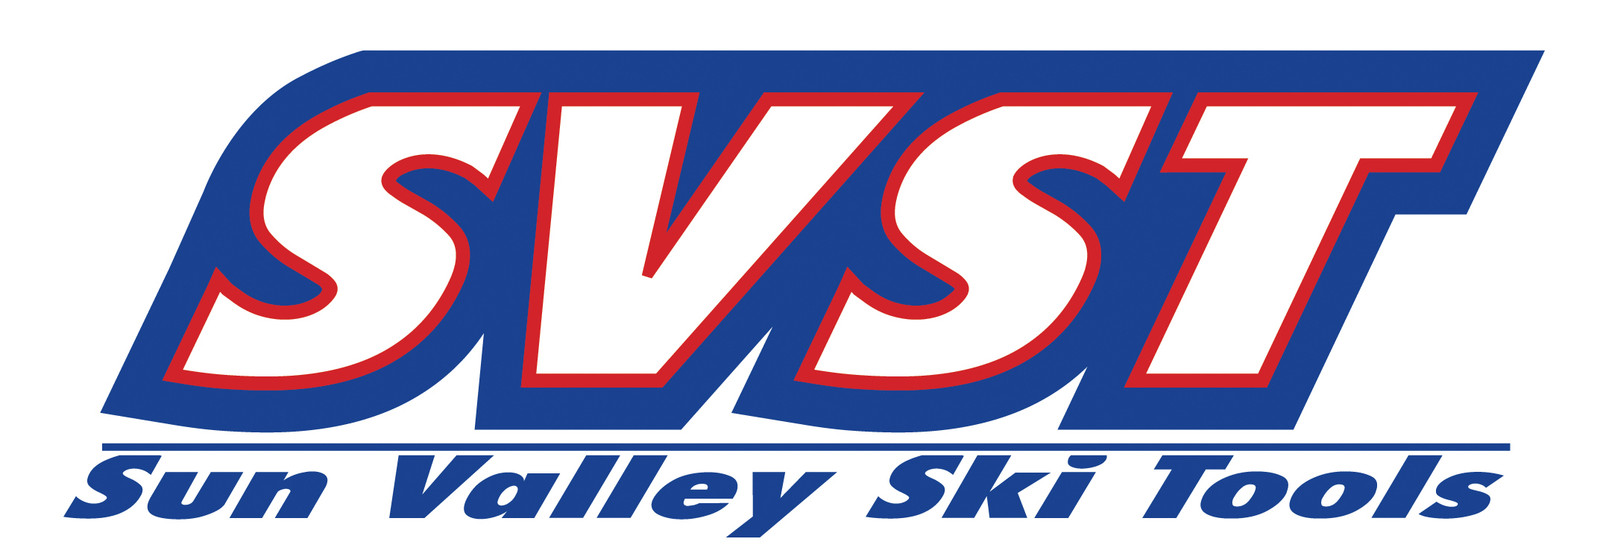 Sun Valley Ski Tools